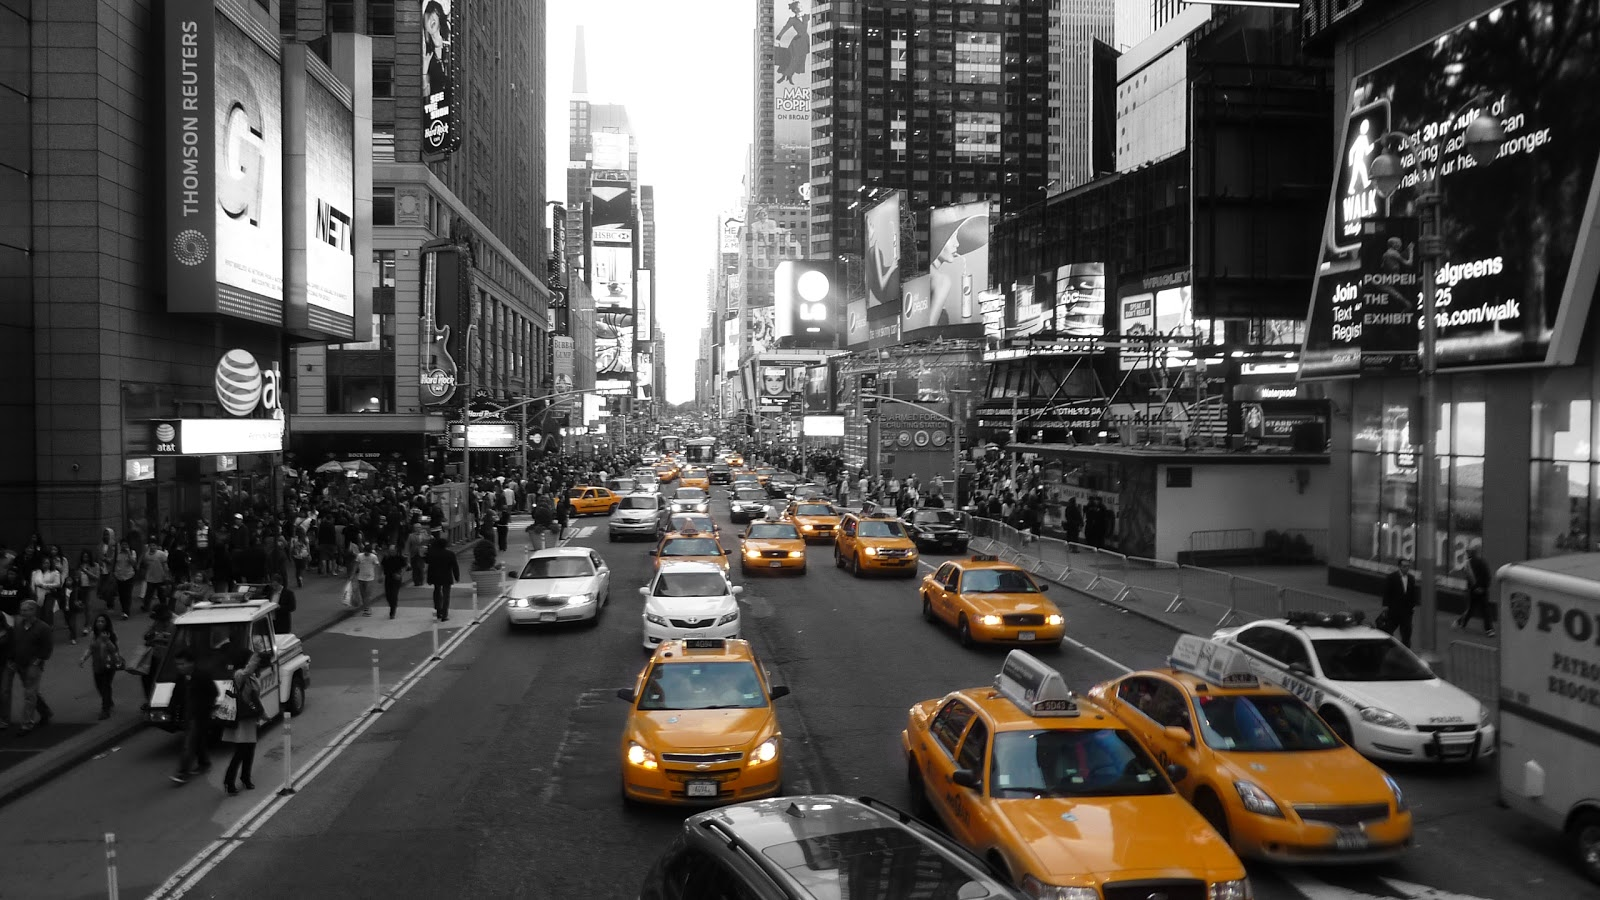 New York Wallpaper Pictures New York Blog 1600x900